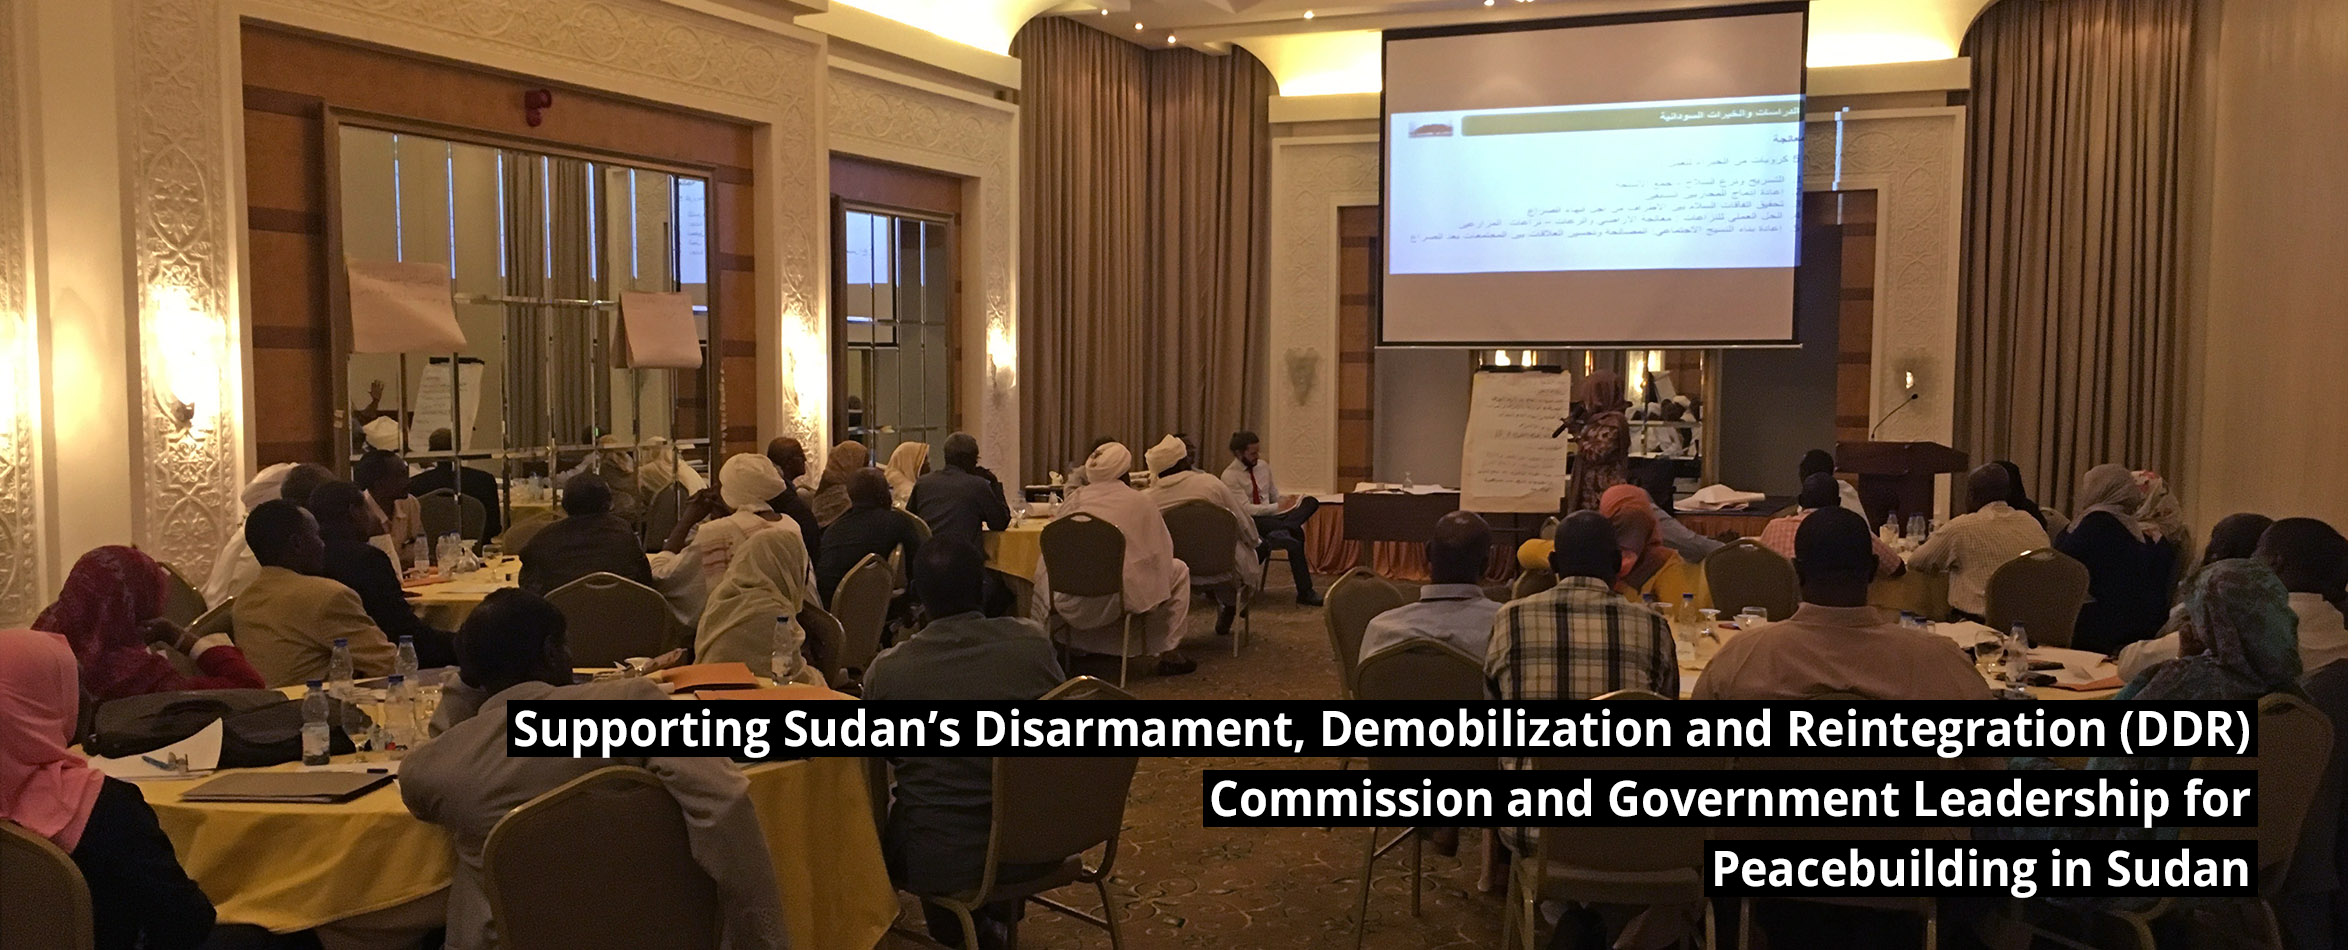 slide-7 Supporting Sudan's Disarmament, Demobilization and Reintegration (DDR) Commission and Government Leadership for Peacebuilding in Sudan